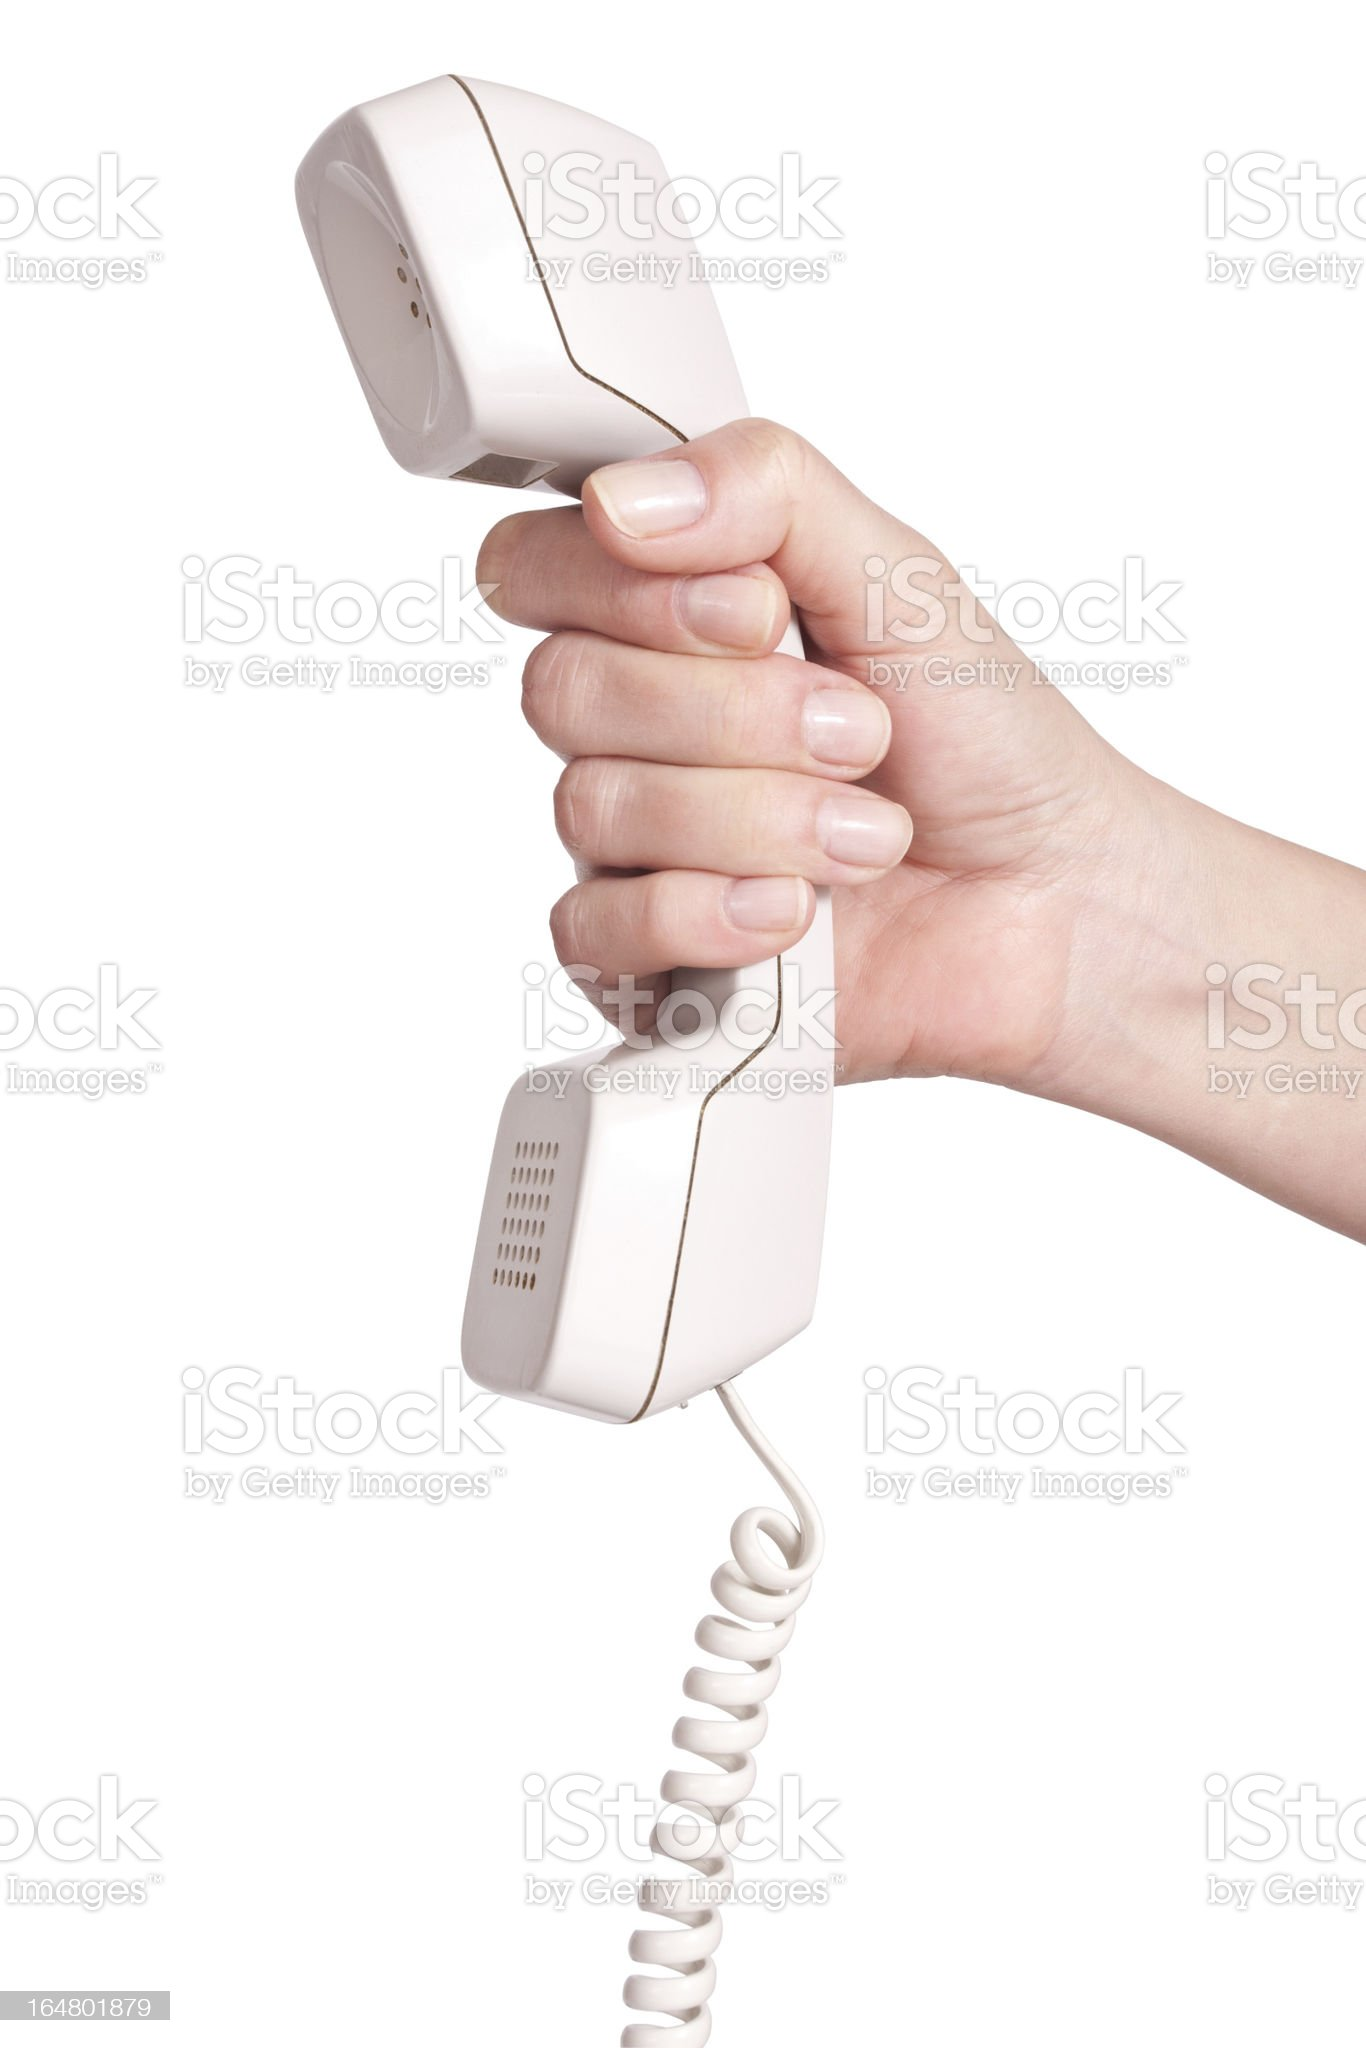 Hand with telephone receiver royalty-free stock photo